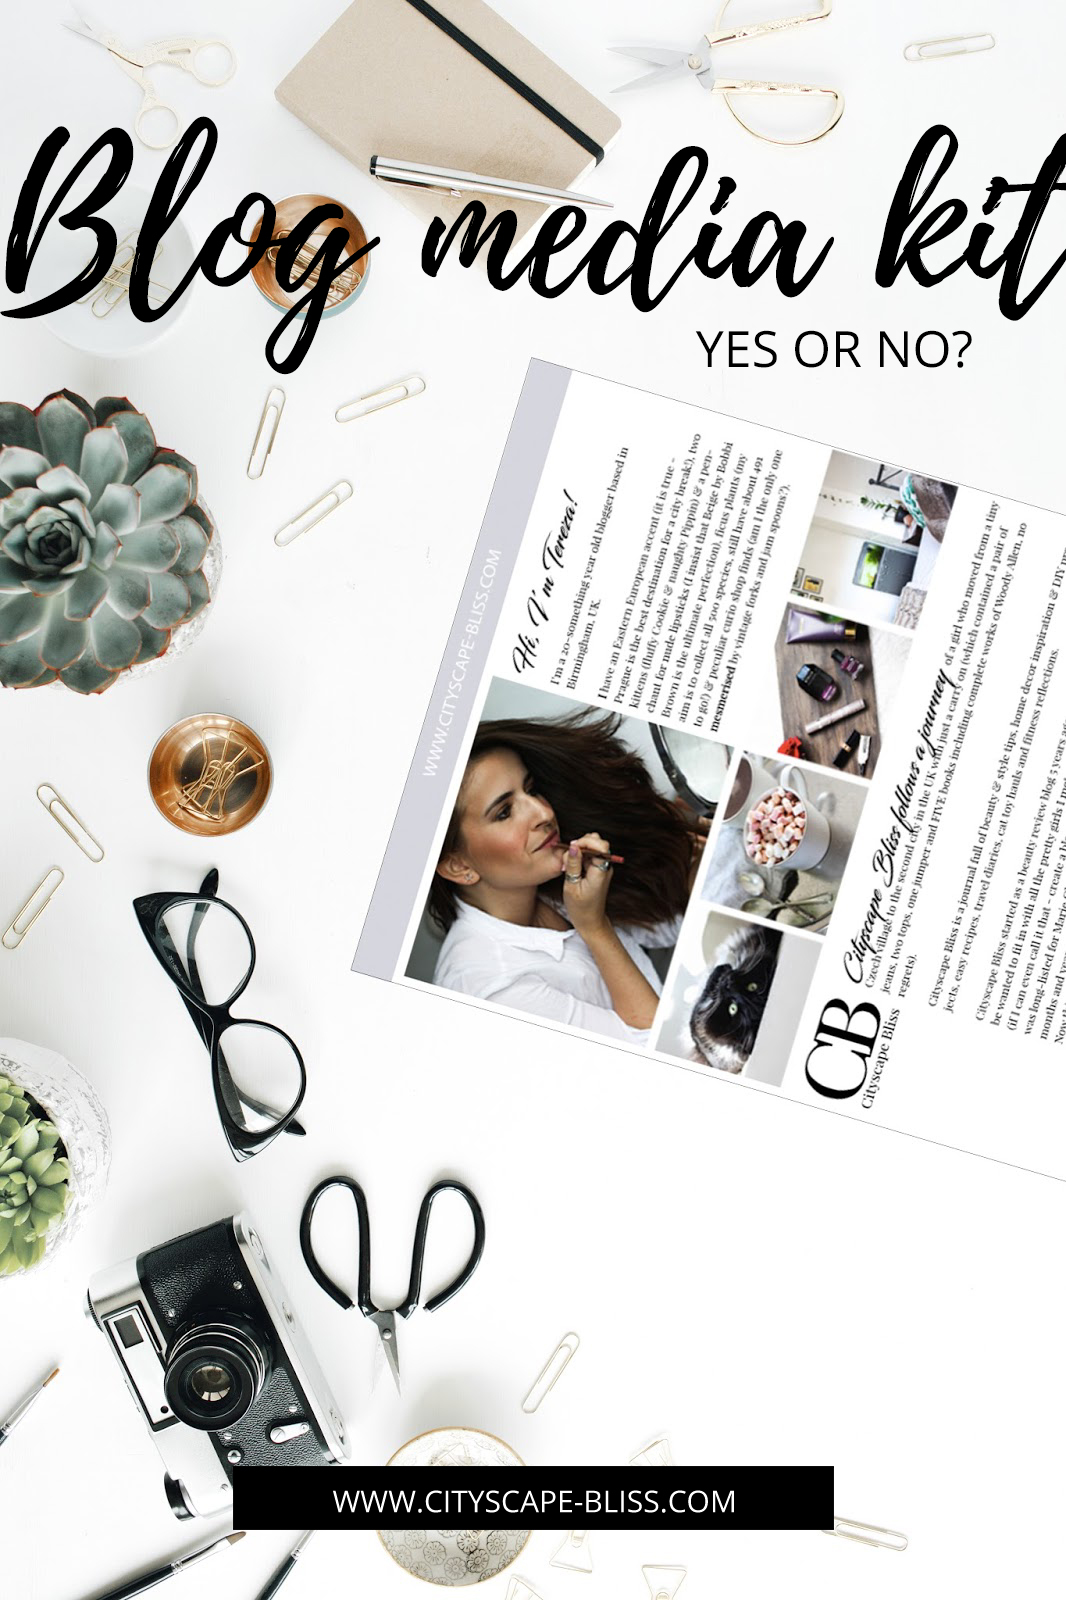 Blog media kit - why bloggers need a media kit?